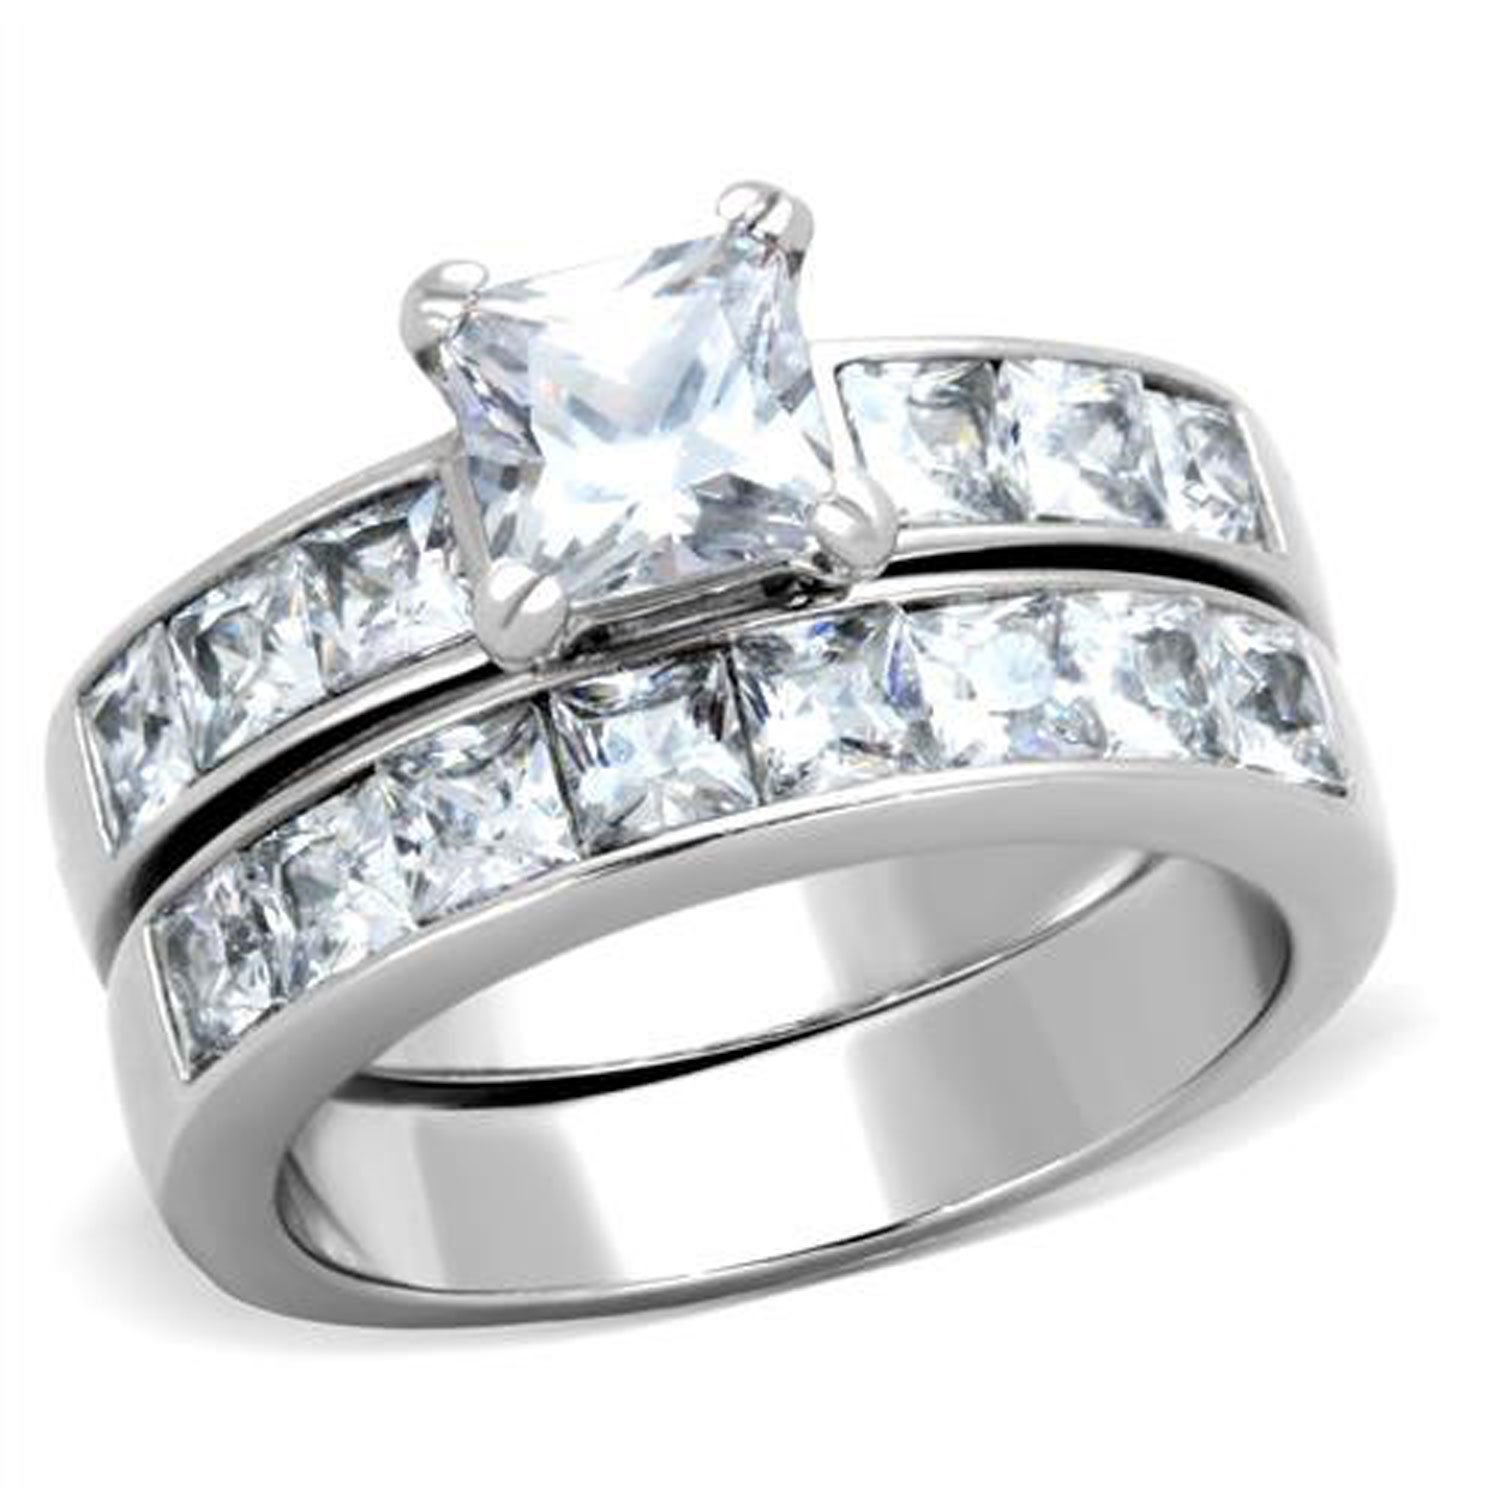 Princess Cut Cubic Zirconia CZ Stainless Steel 2 Pc Women Wedding Engagement Rings Bridal Sets TKJ